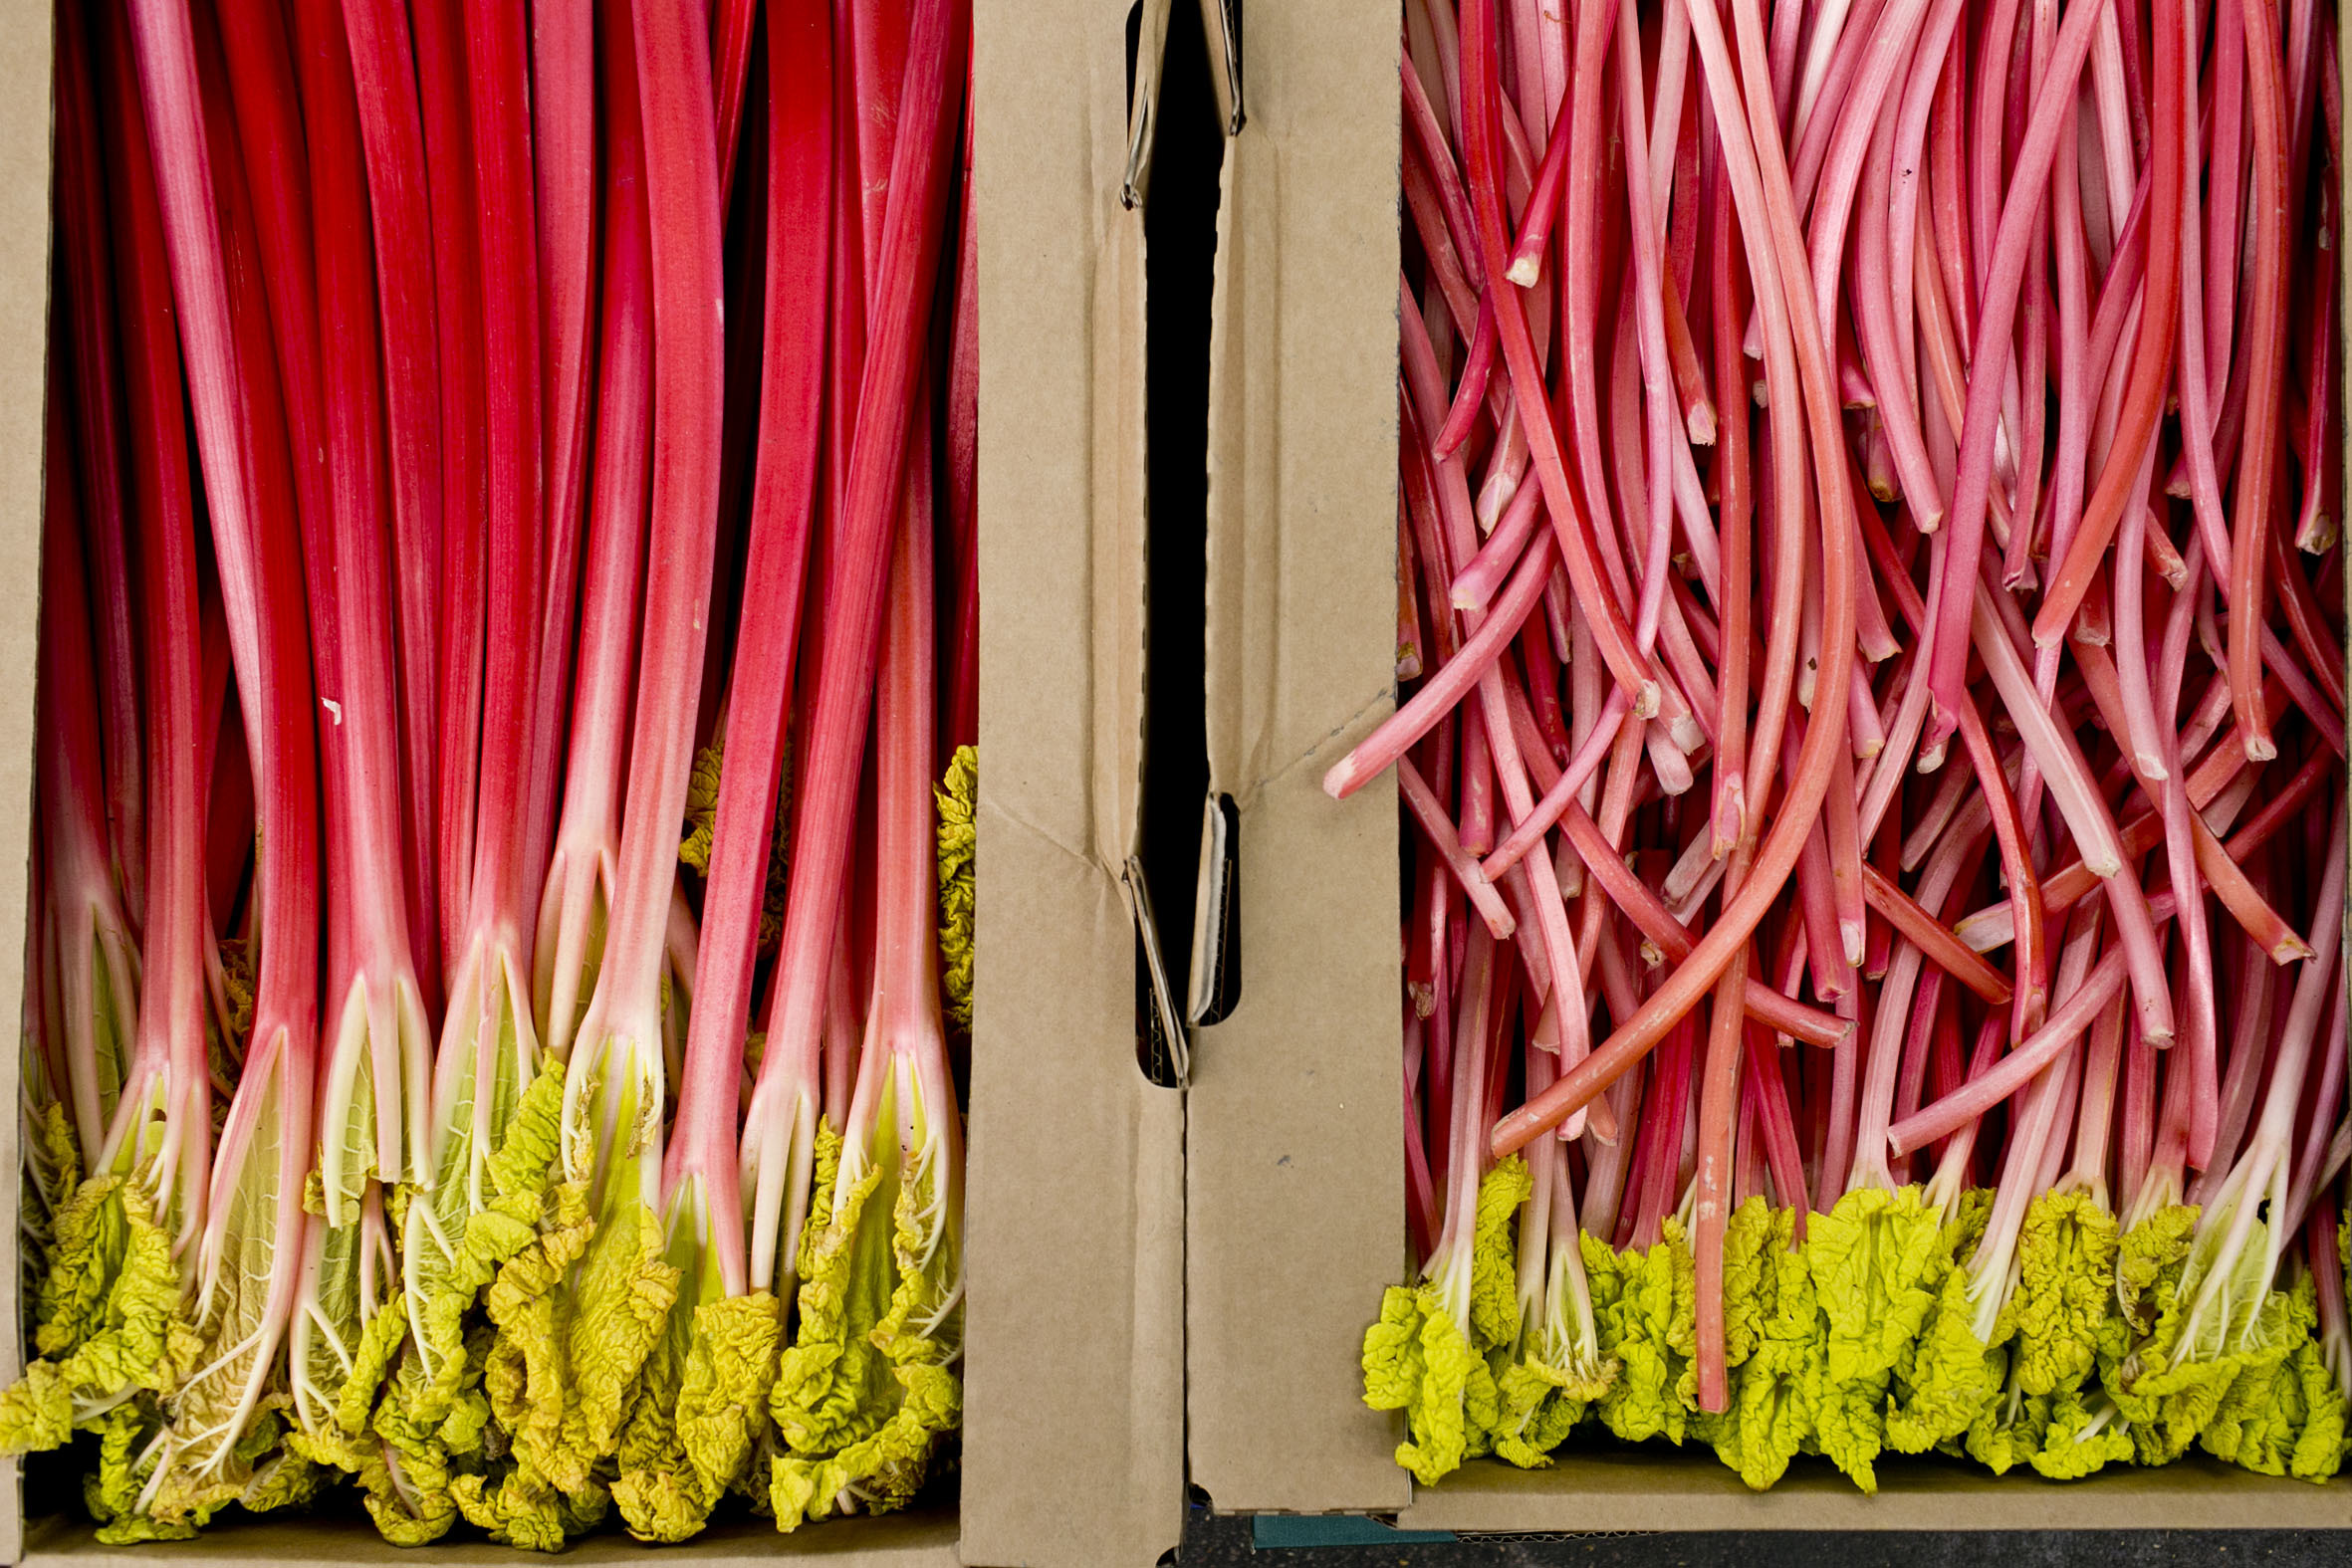 fruit-and-vegetable-market-report-february-2014-rhubarb.jpg?mtime=20170922113427#asset:11353